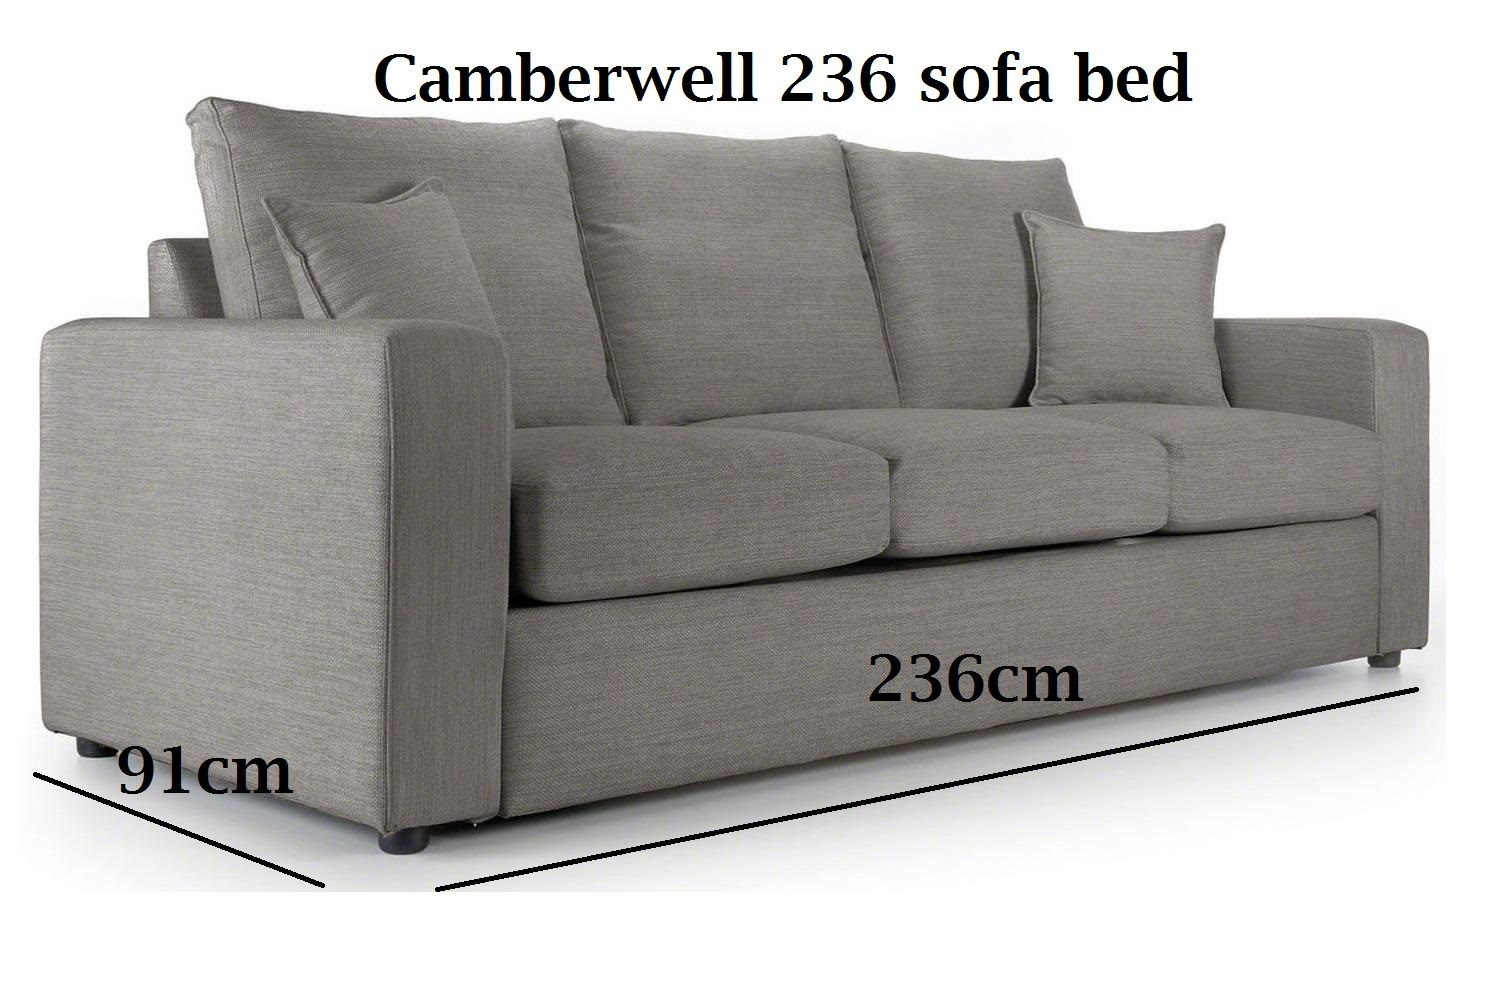 The-Camberwell-special ofeer 236 sofa bed